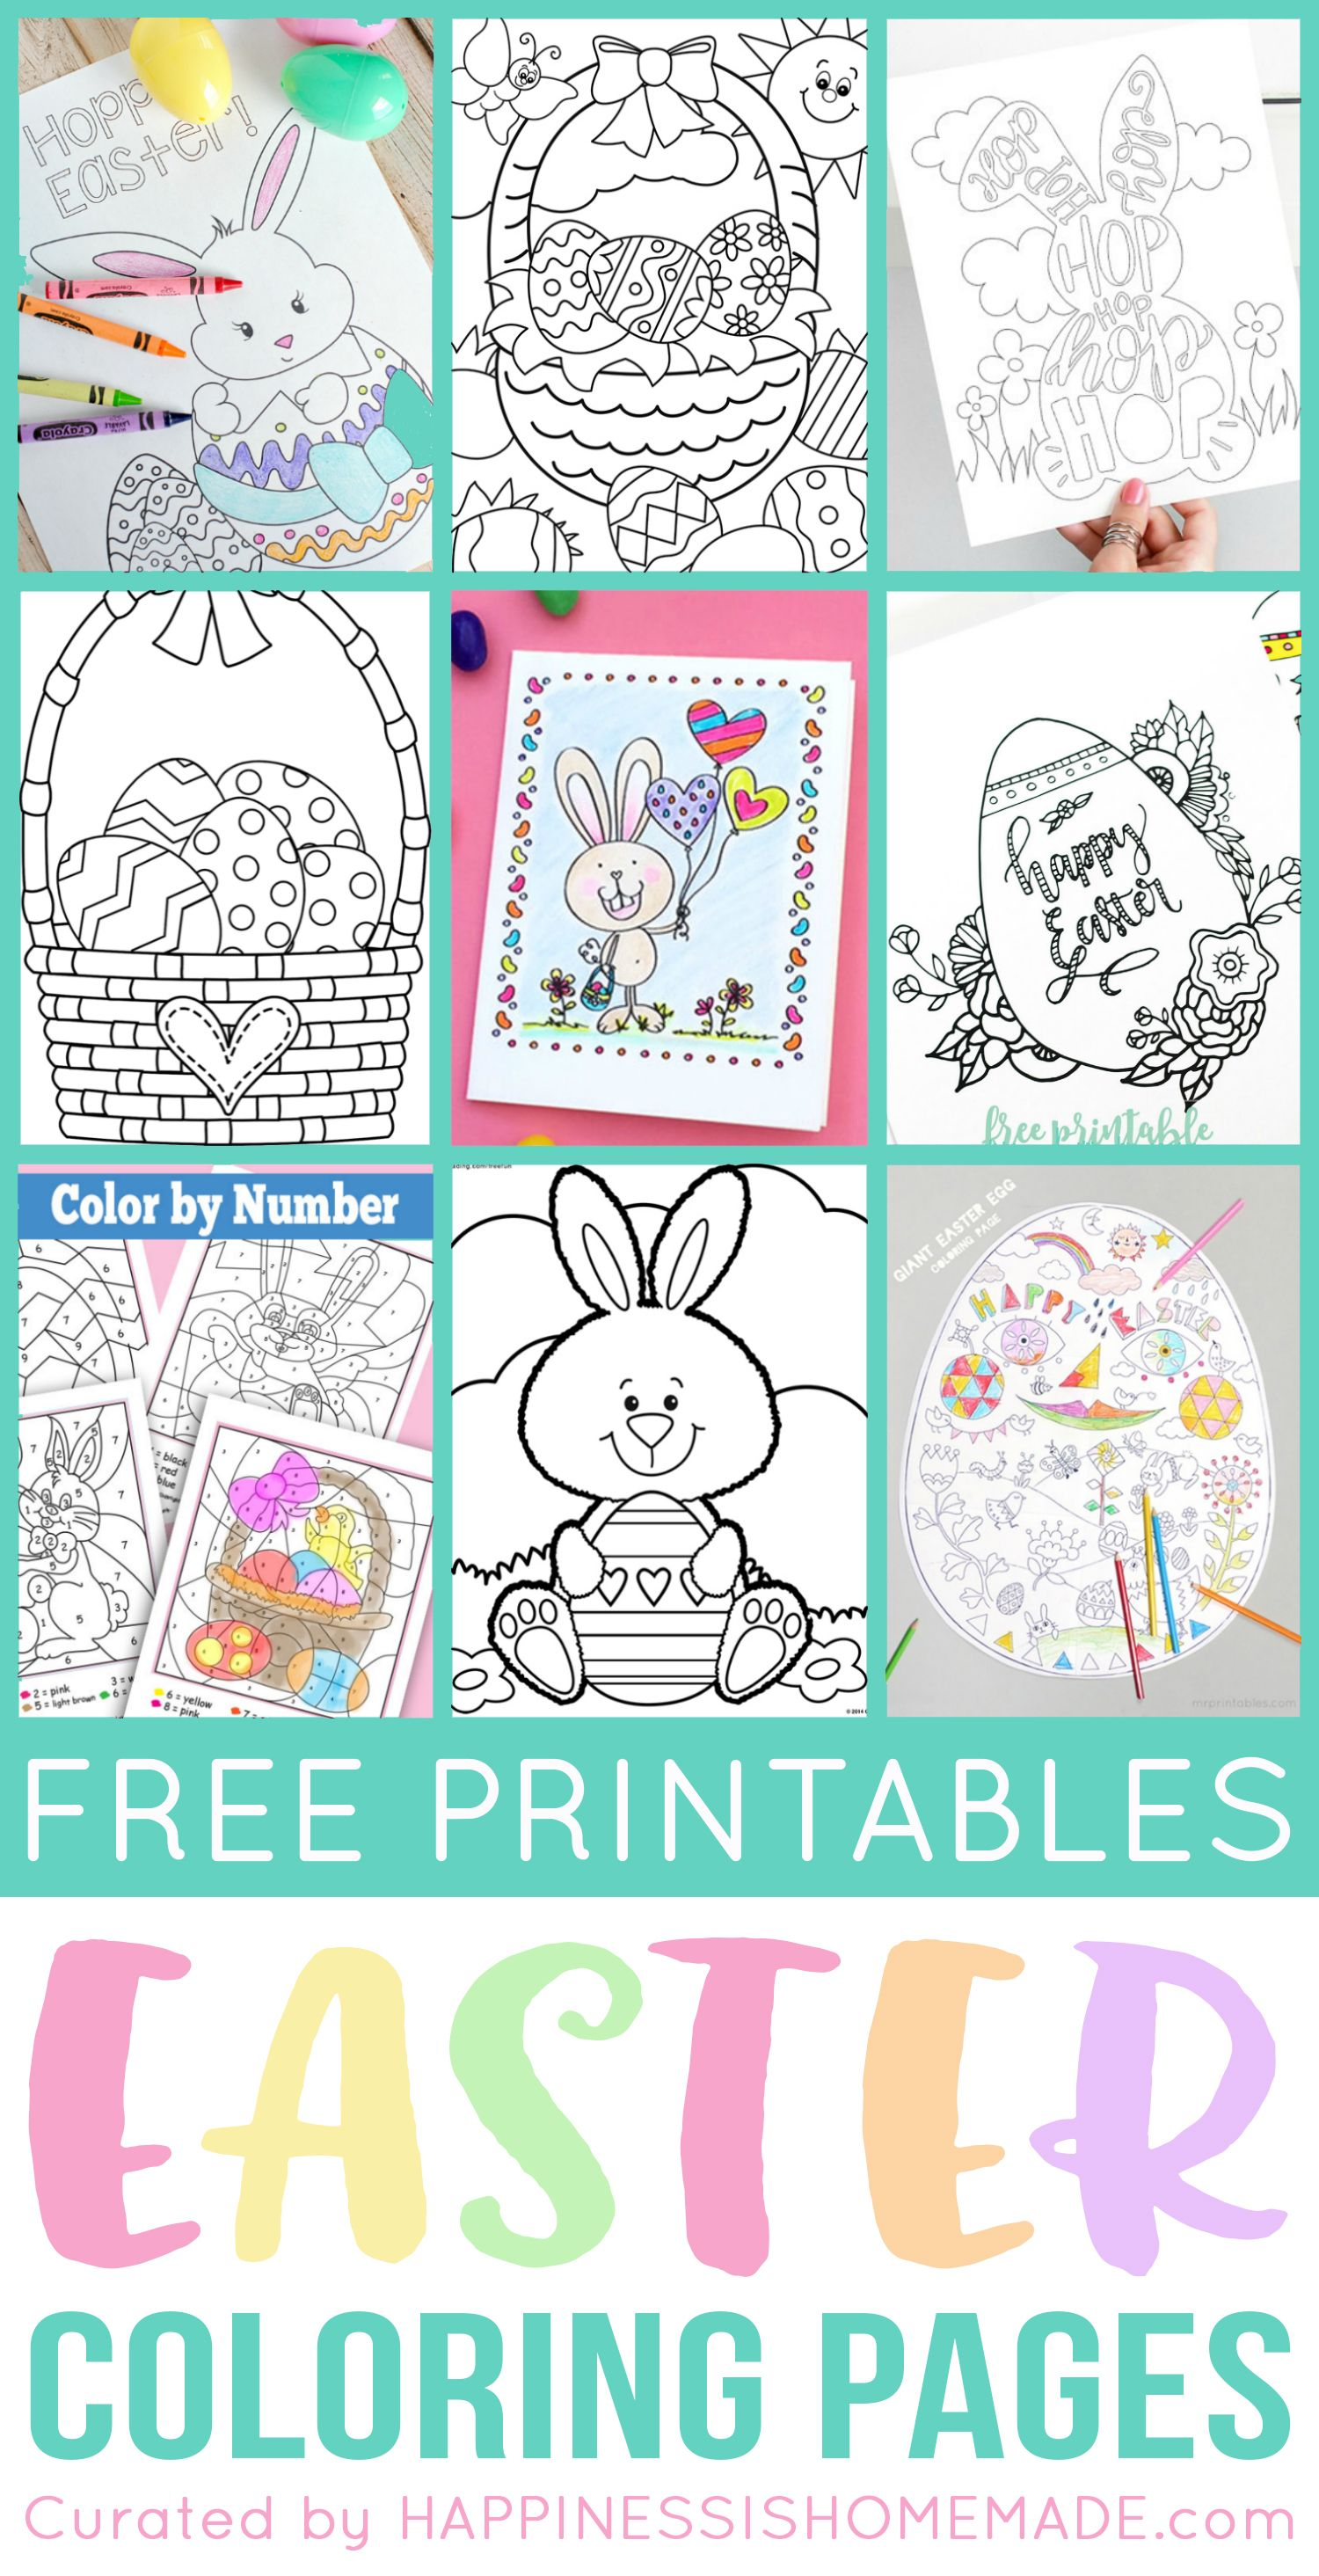 Free Printable Easter Coloring Pages Are Fun For Kids Of All Ages Easter Egg Coloring Pages